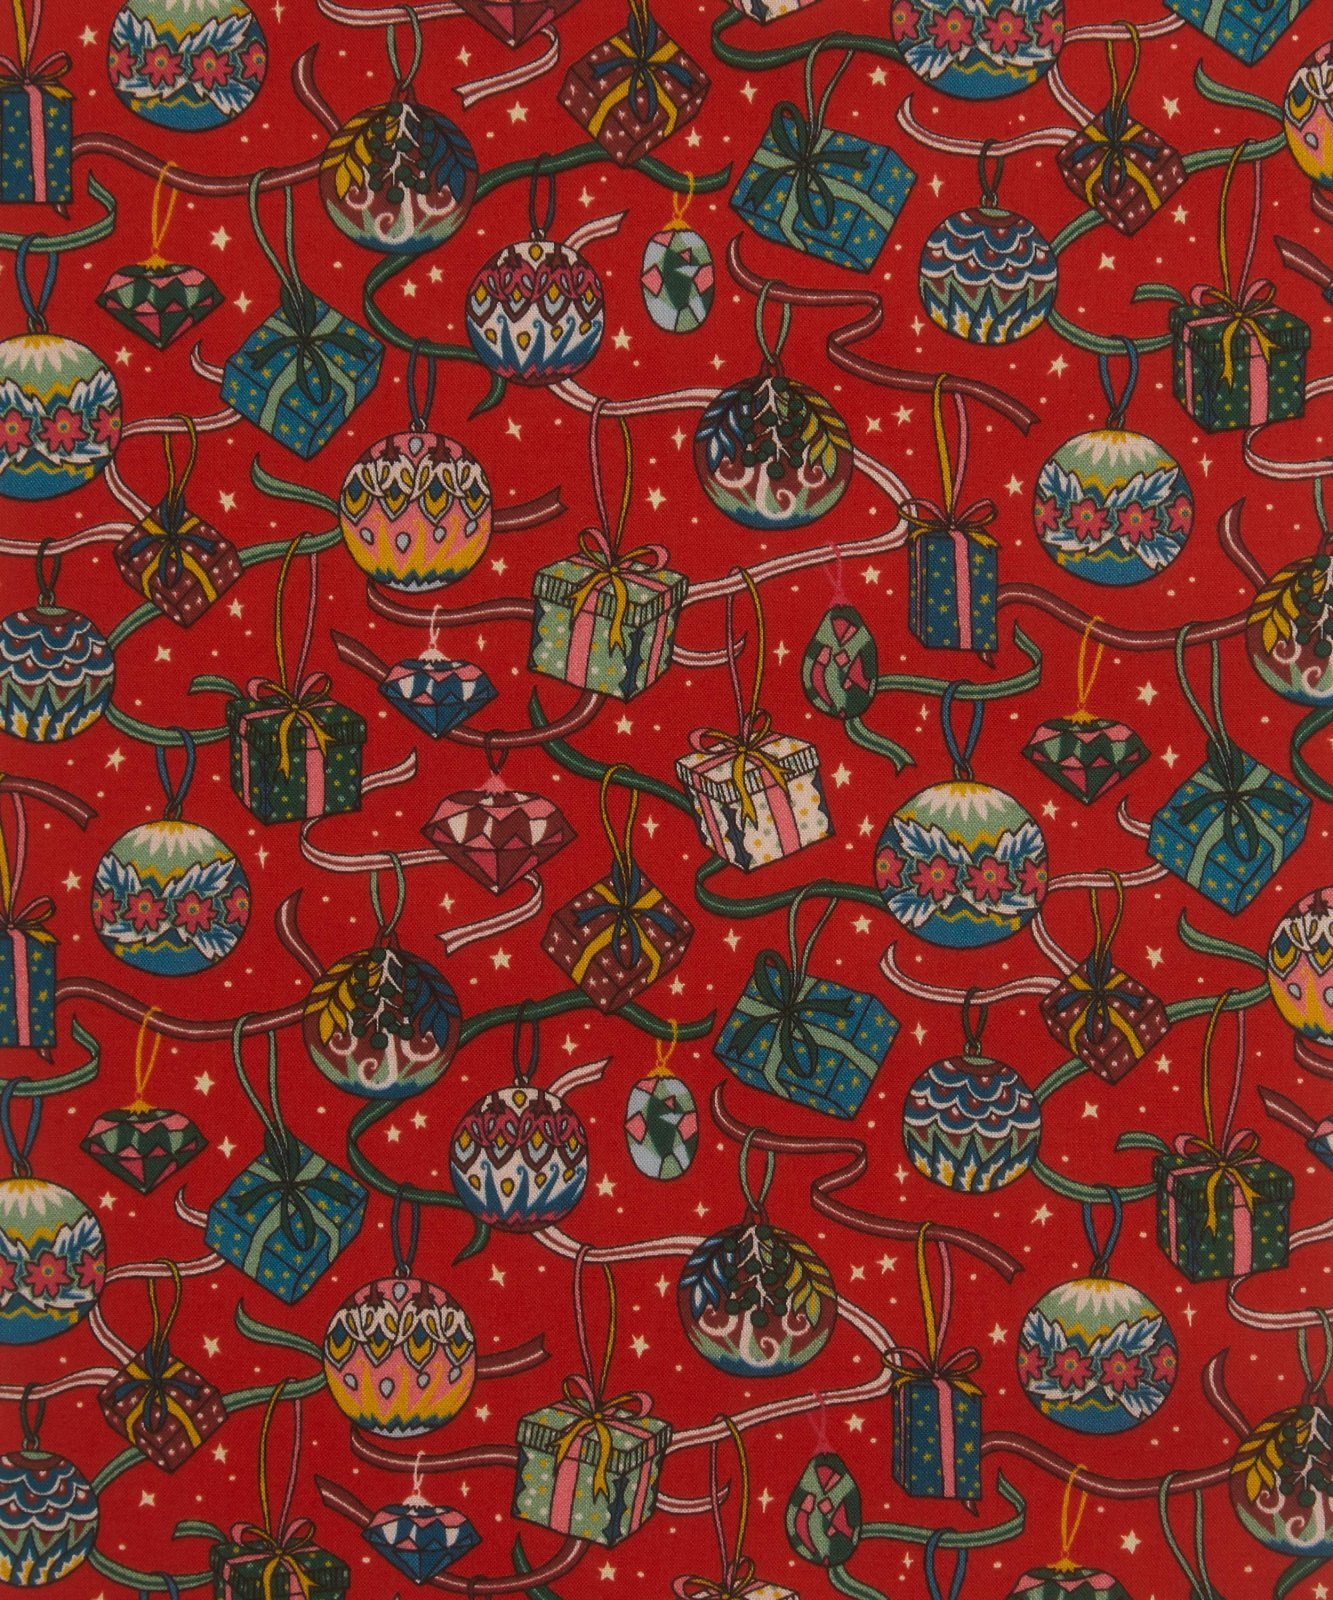 House of Gift C Red Tana Lawn Liberty of London Christmas